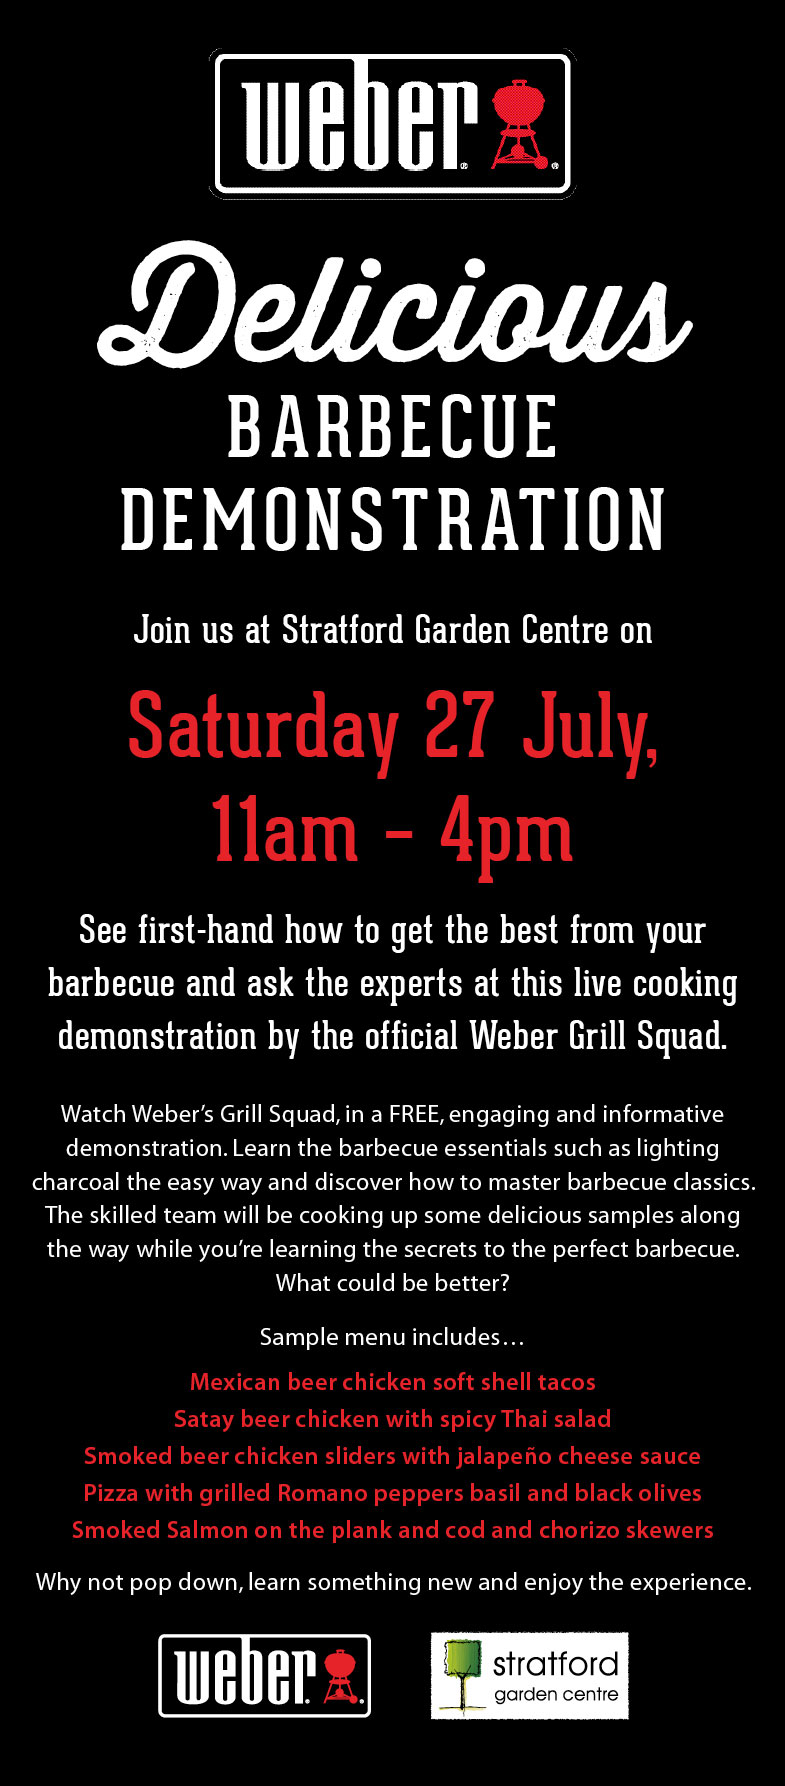 Weber-BBQ-demo-July-event-stratford-garden-centre-1